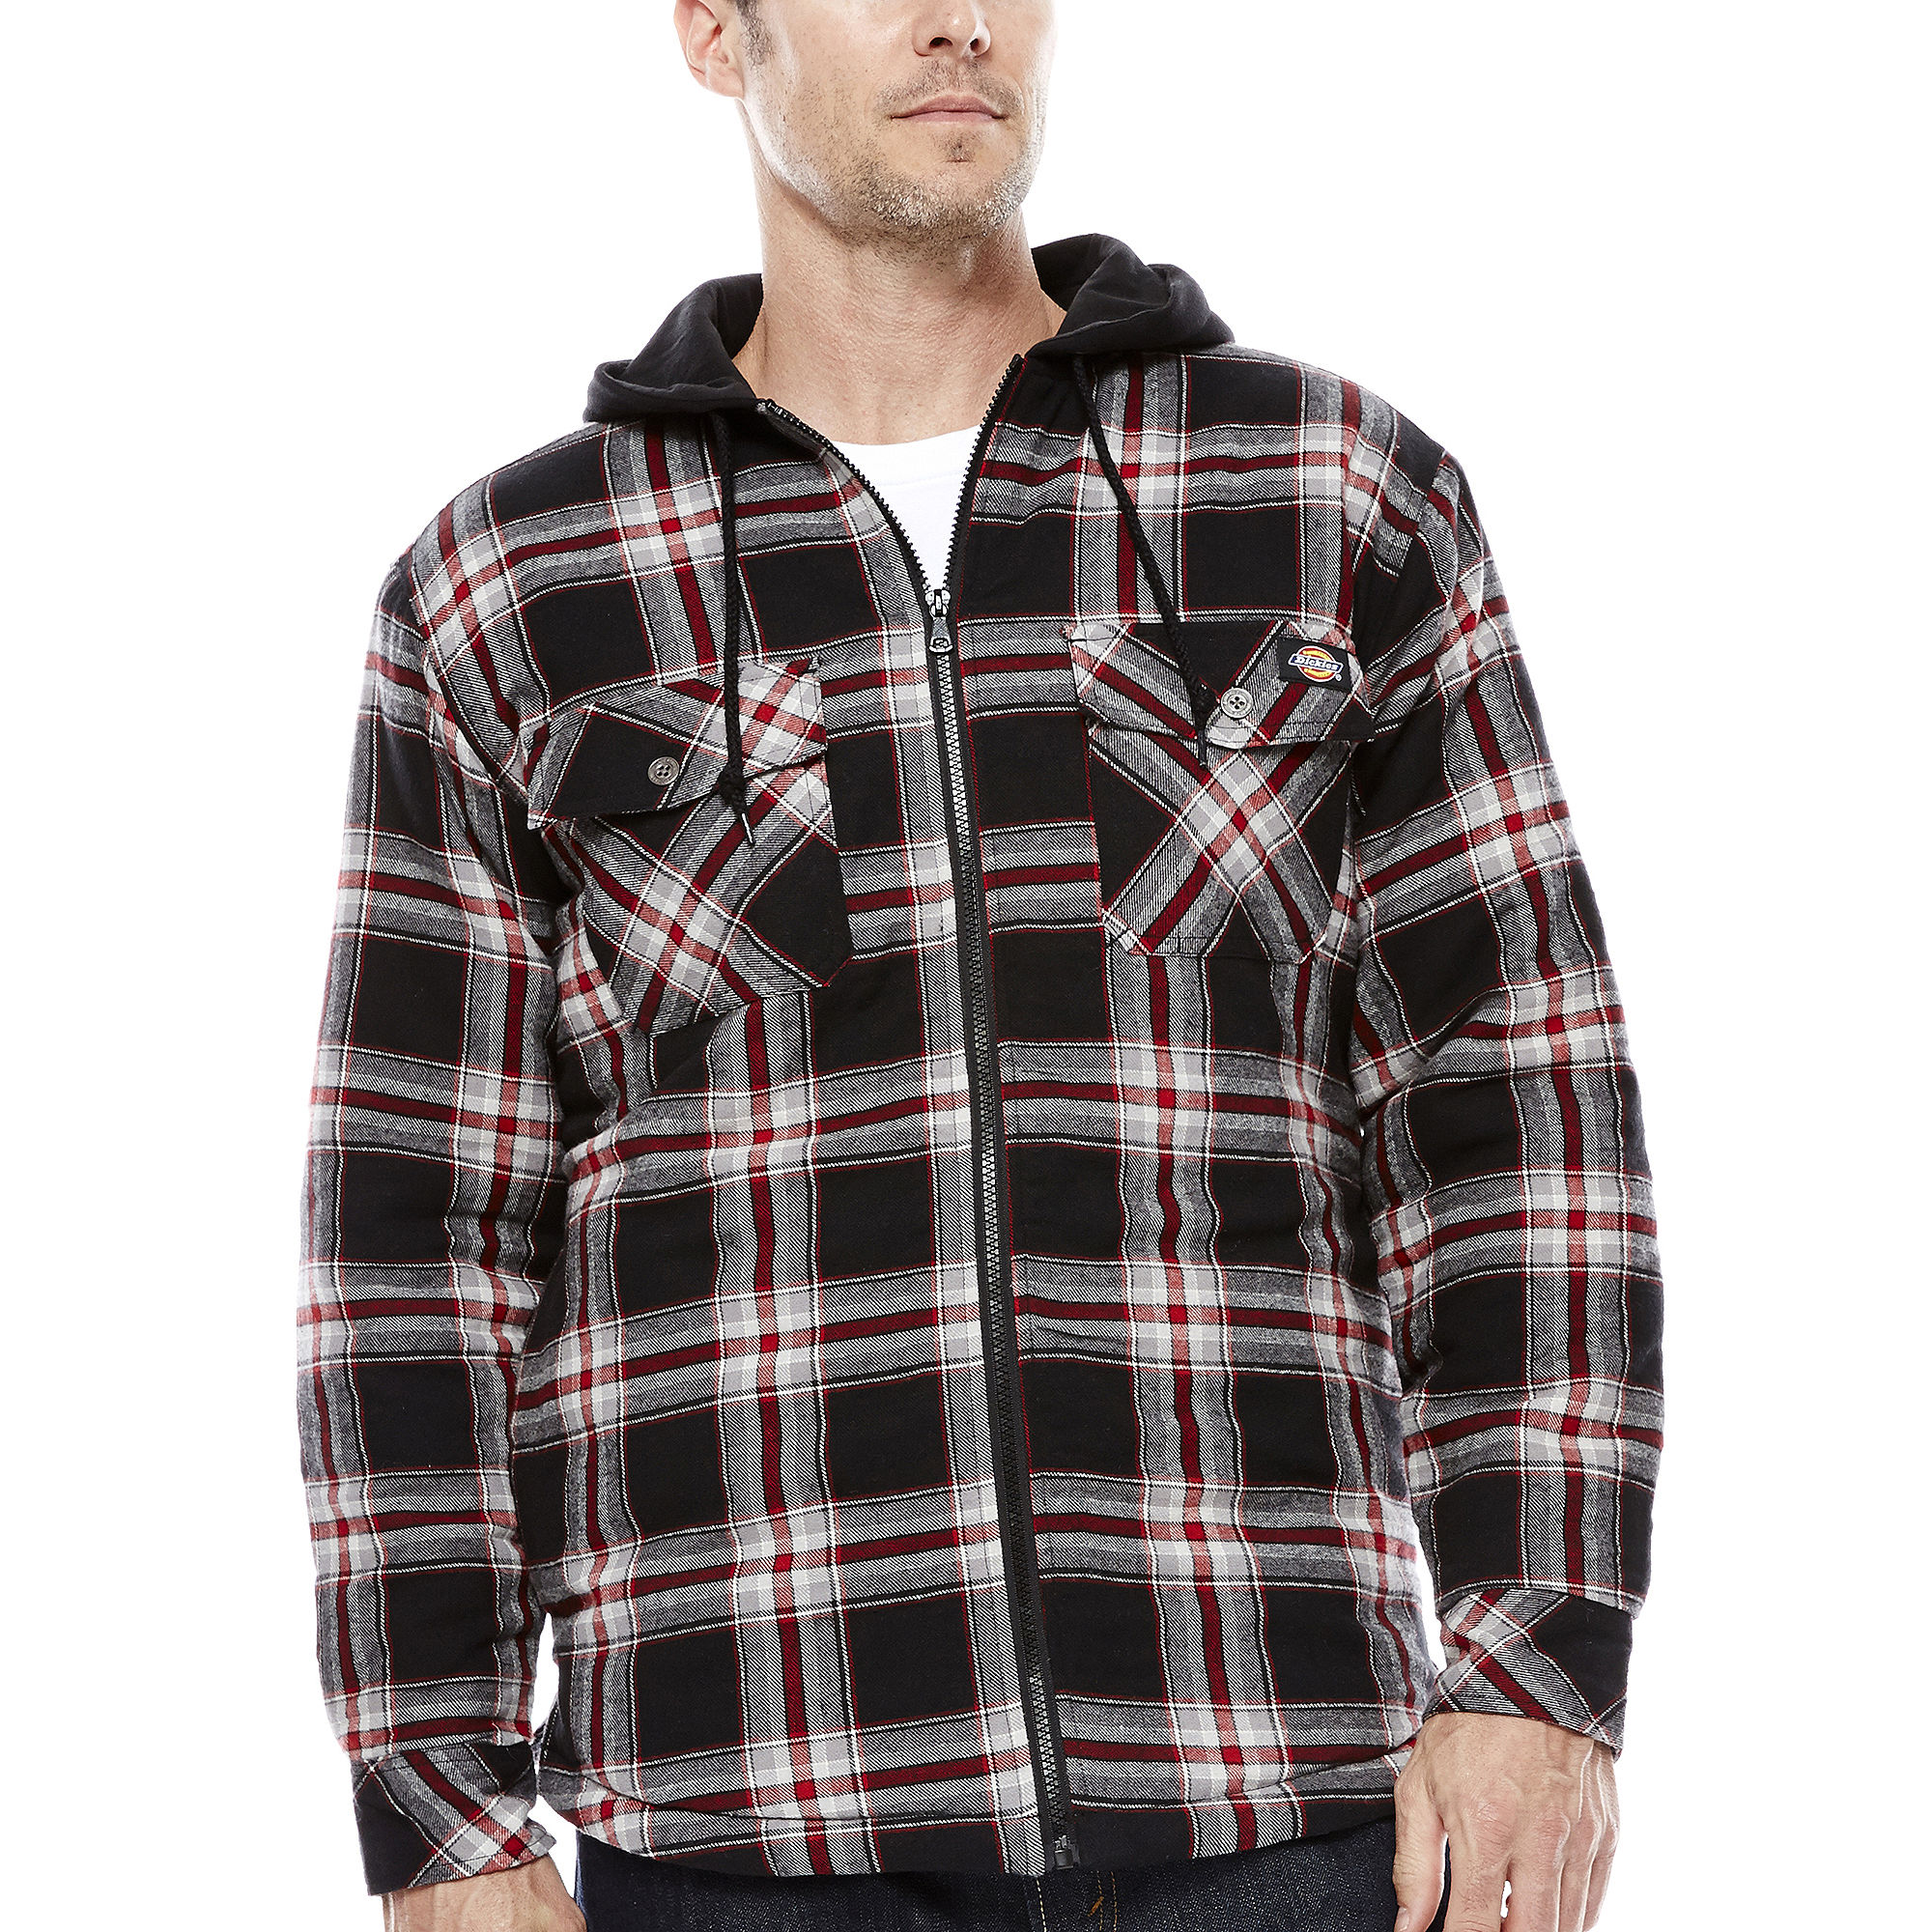 manufacturing shirt richlu zoom flannel pld hooded wk fooler description image front quilted quilt product fabric